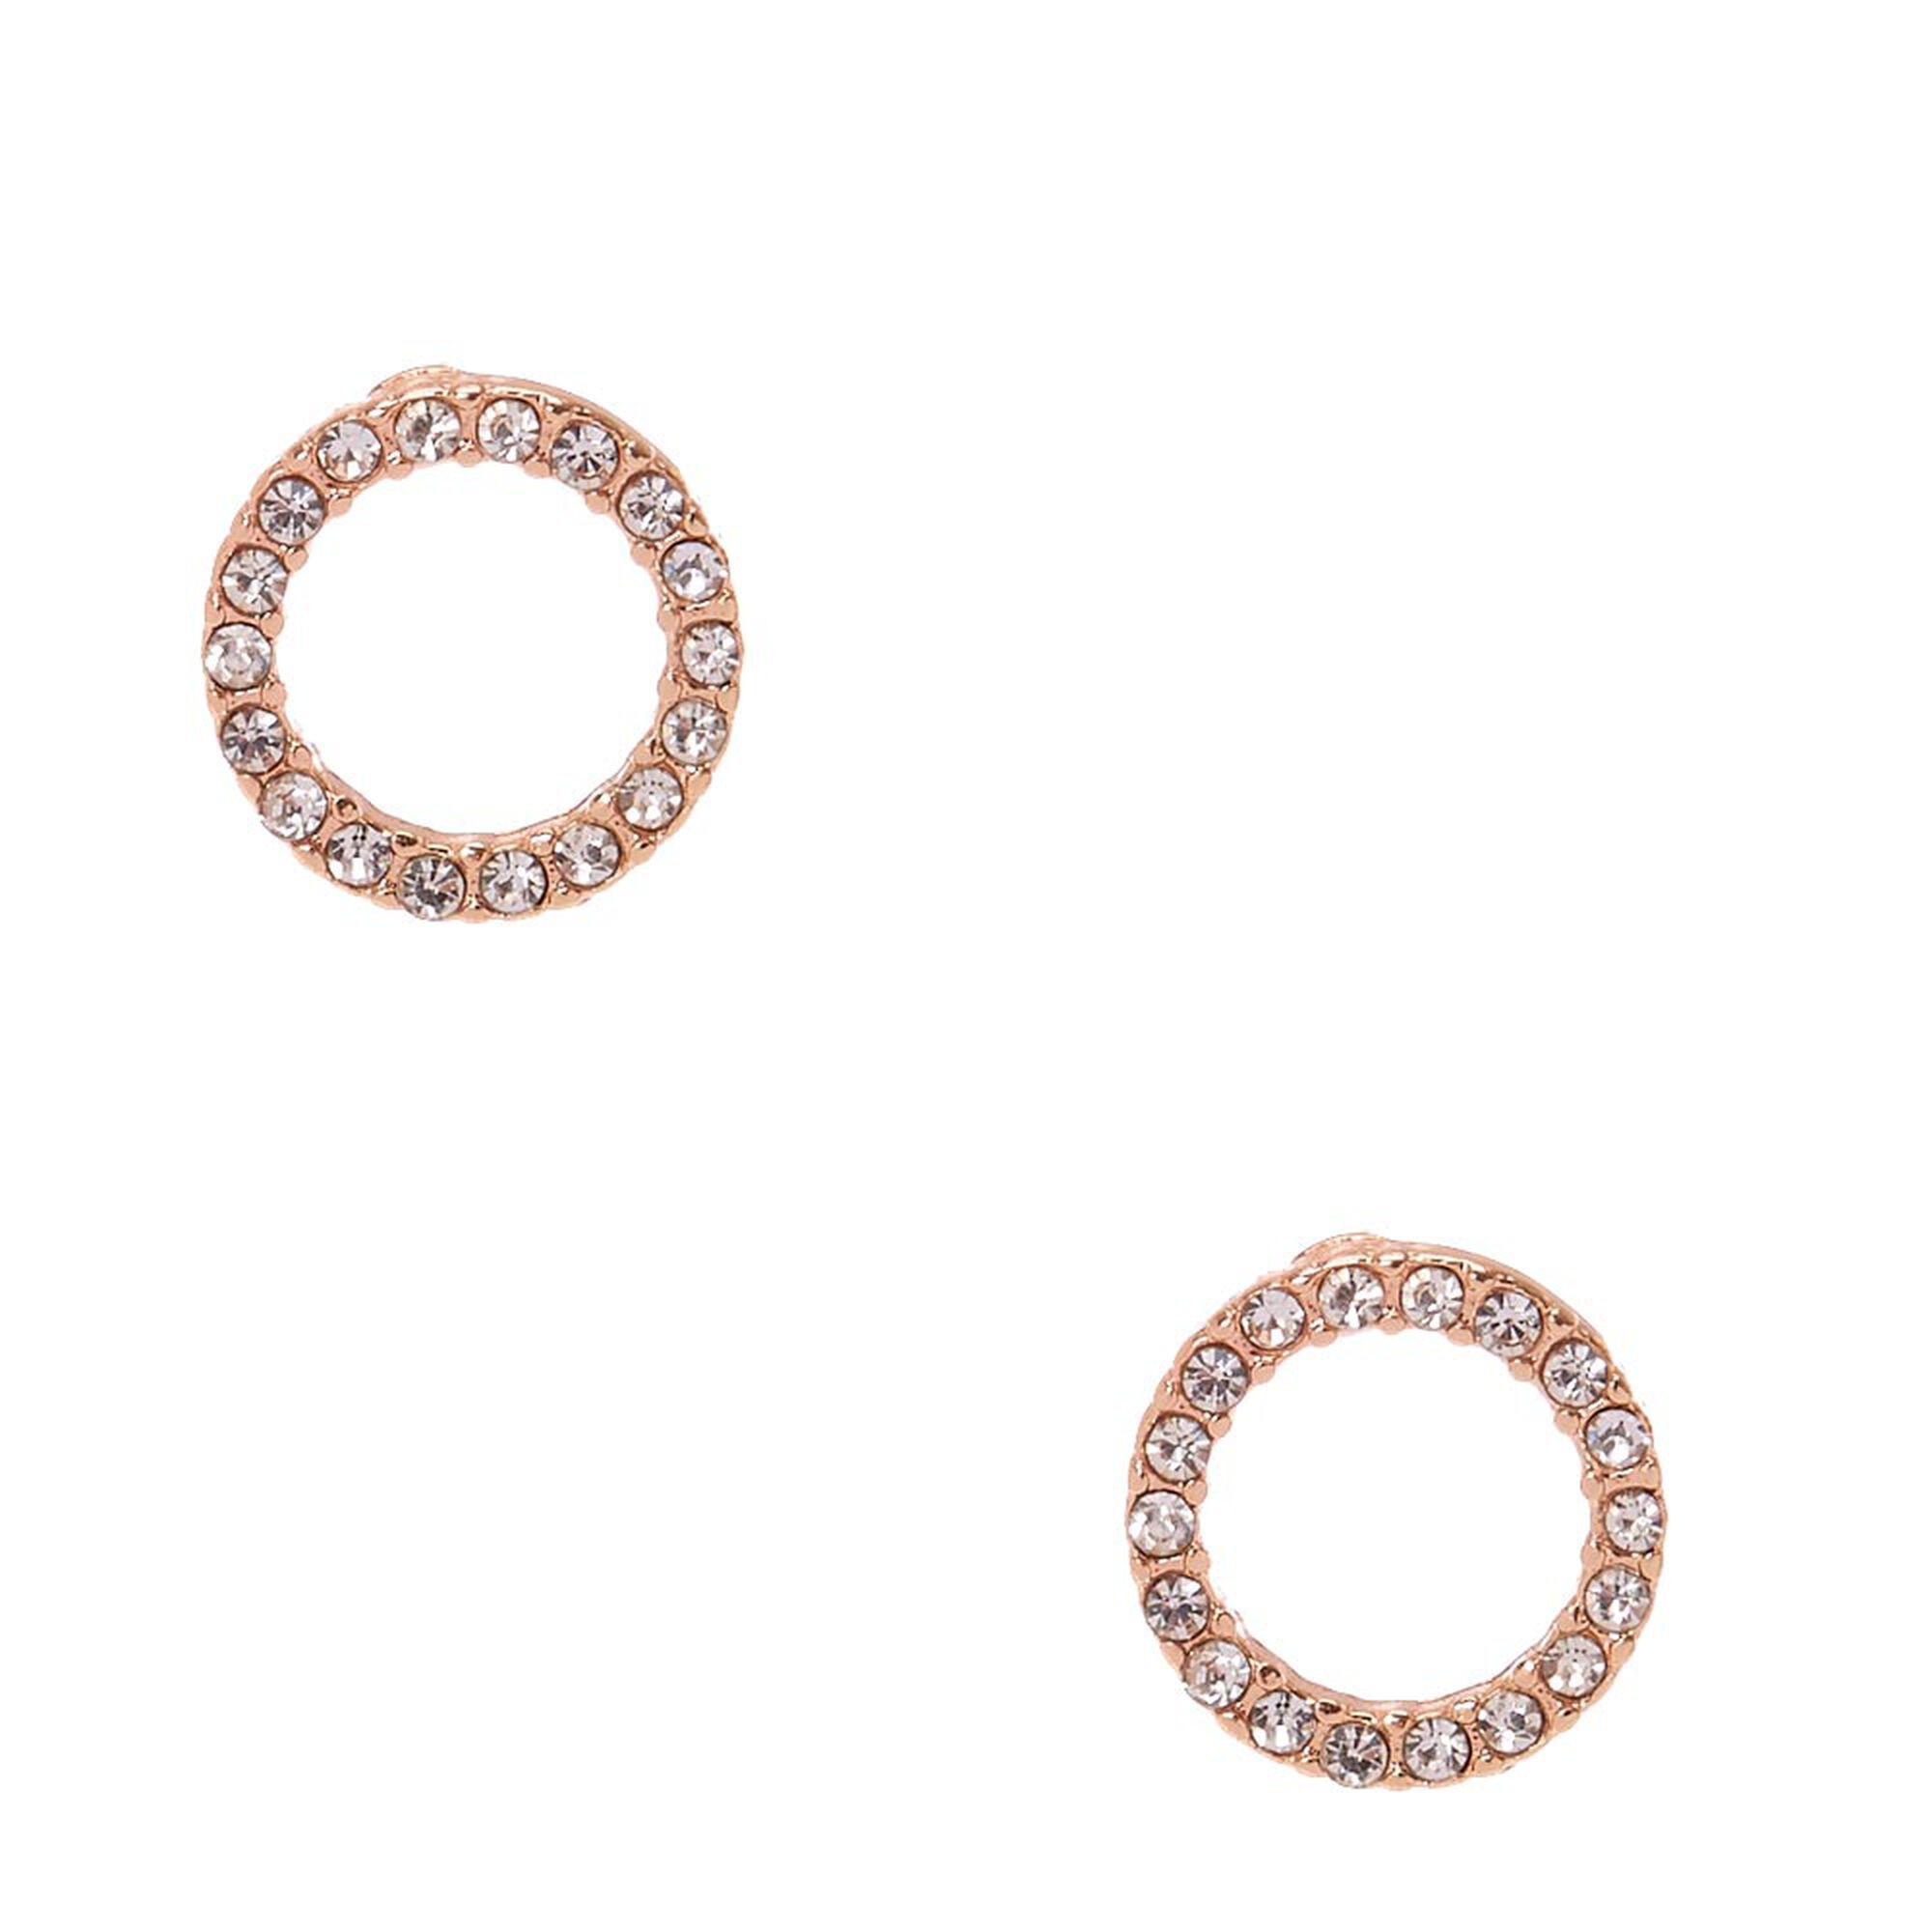 shop image circle nordstrom stud earrings ariella open rack of product collection